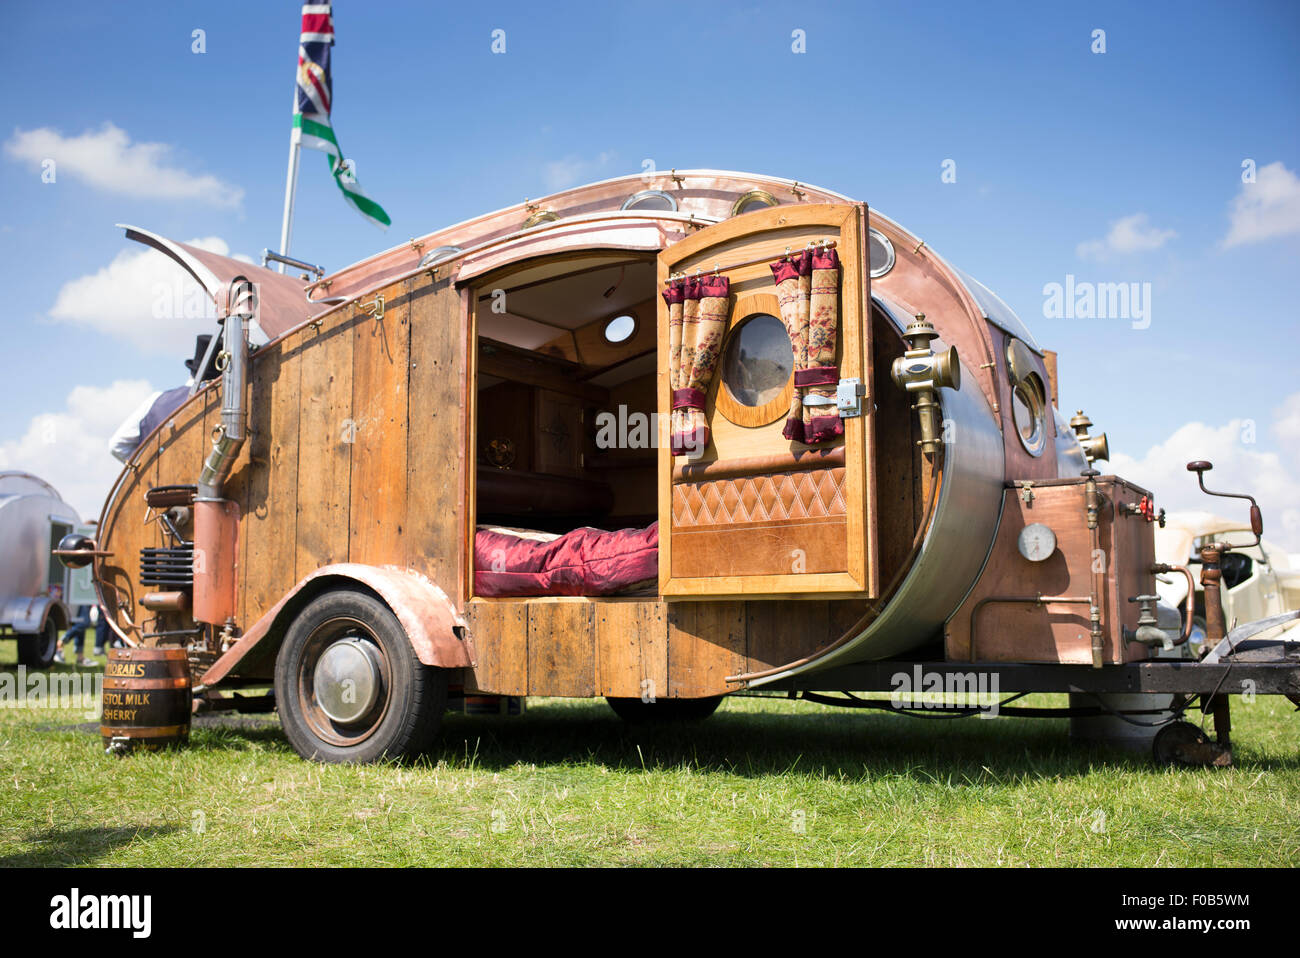 Steampunk teardrop trailer at a vintage retro festival newbury england